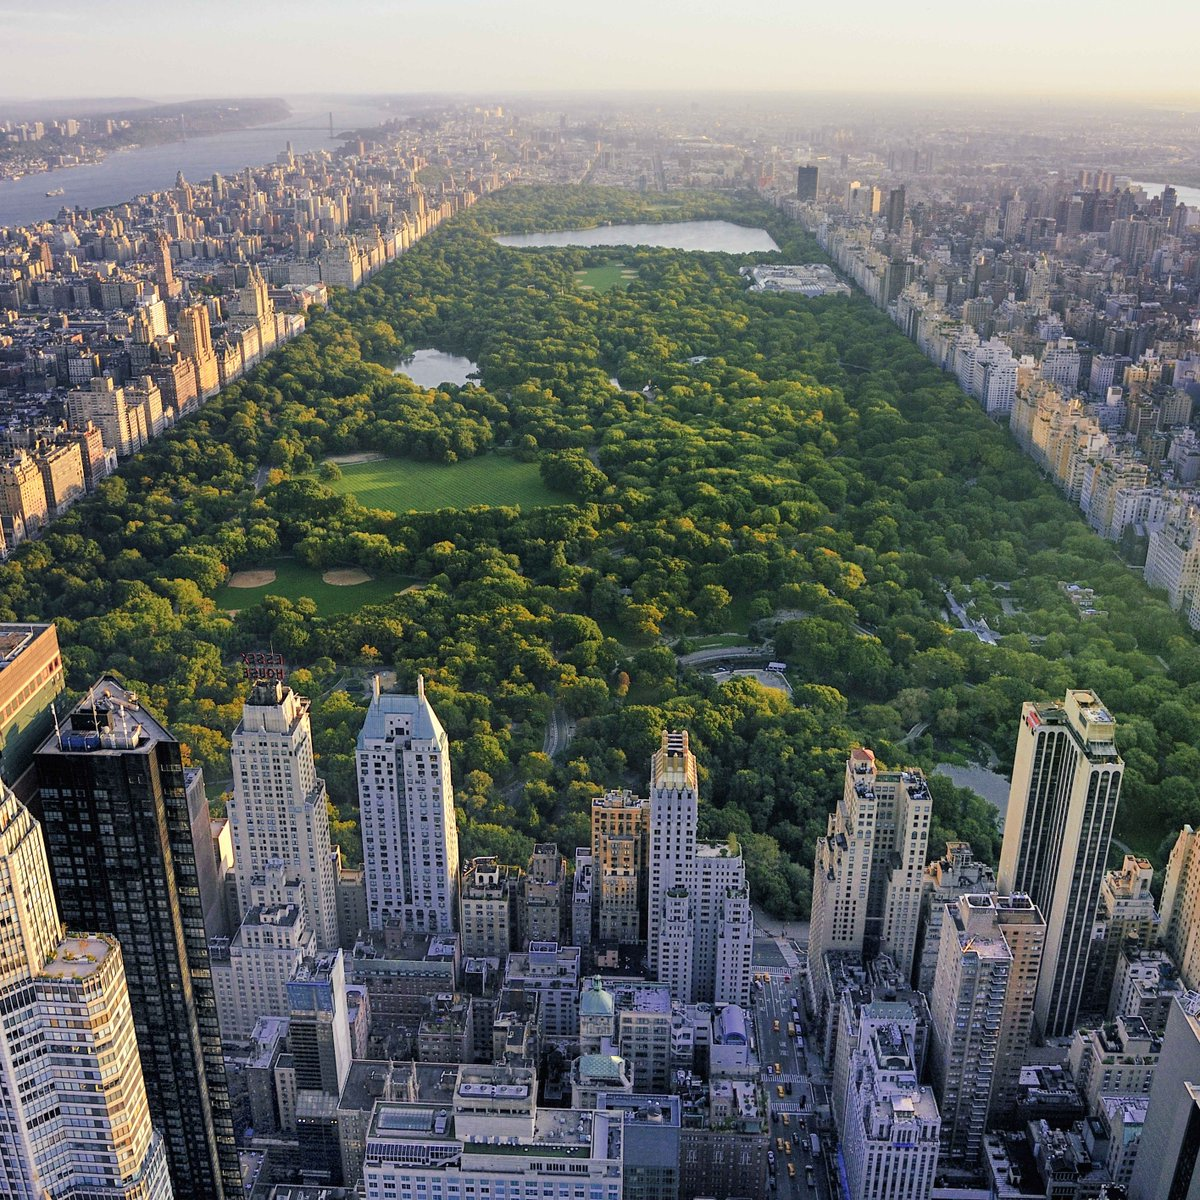 #TravelFact: If you walked all the paths in central park you would walk over 90 kms. #workit http://t.co/jpFjmgE8bG